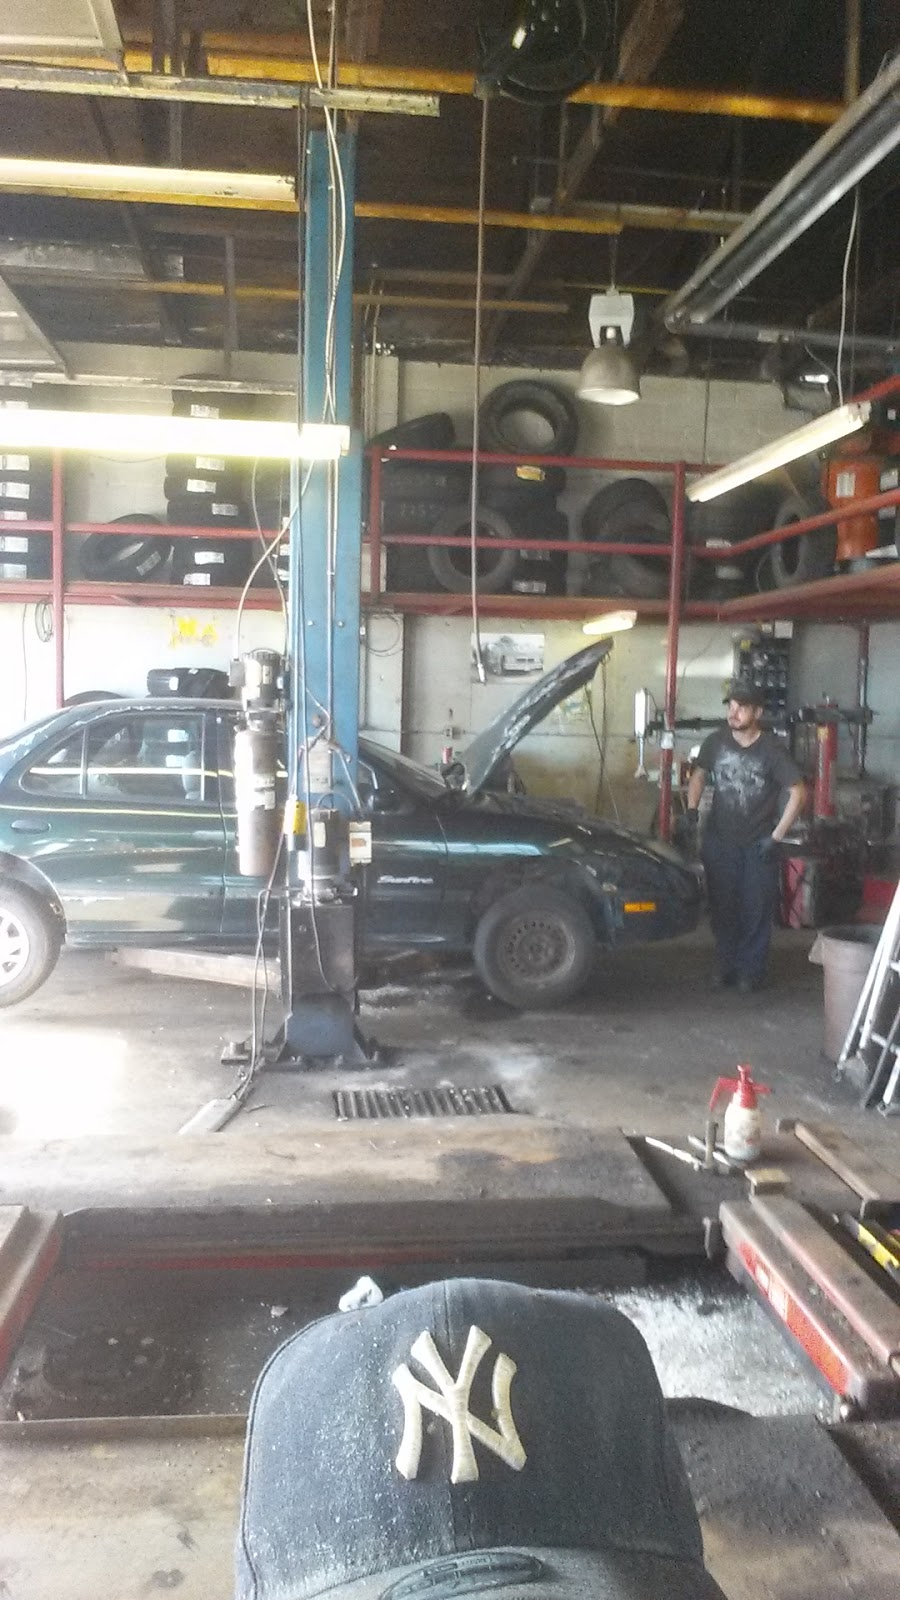 Jk Tire And Auto   car repair   898 Kingston Rd, Pickering, ON L1V 1A8, Canada   9058311365 OR +1 905-831-1365